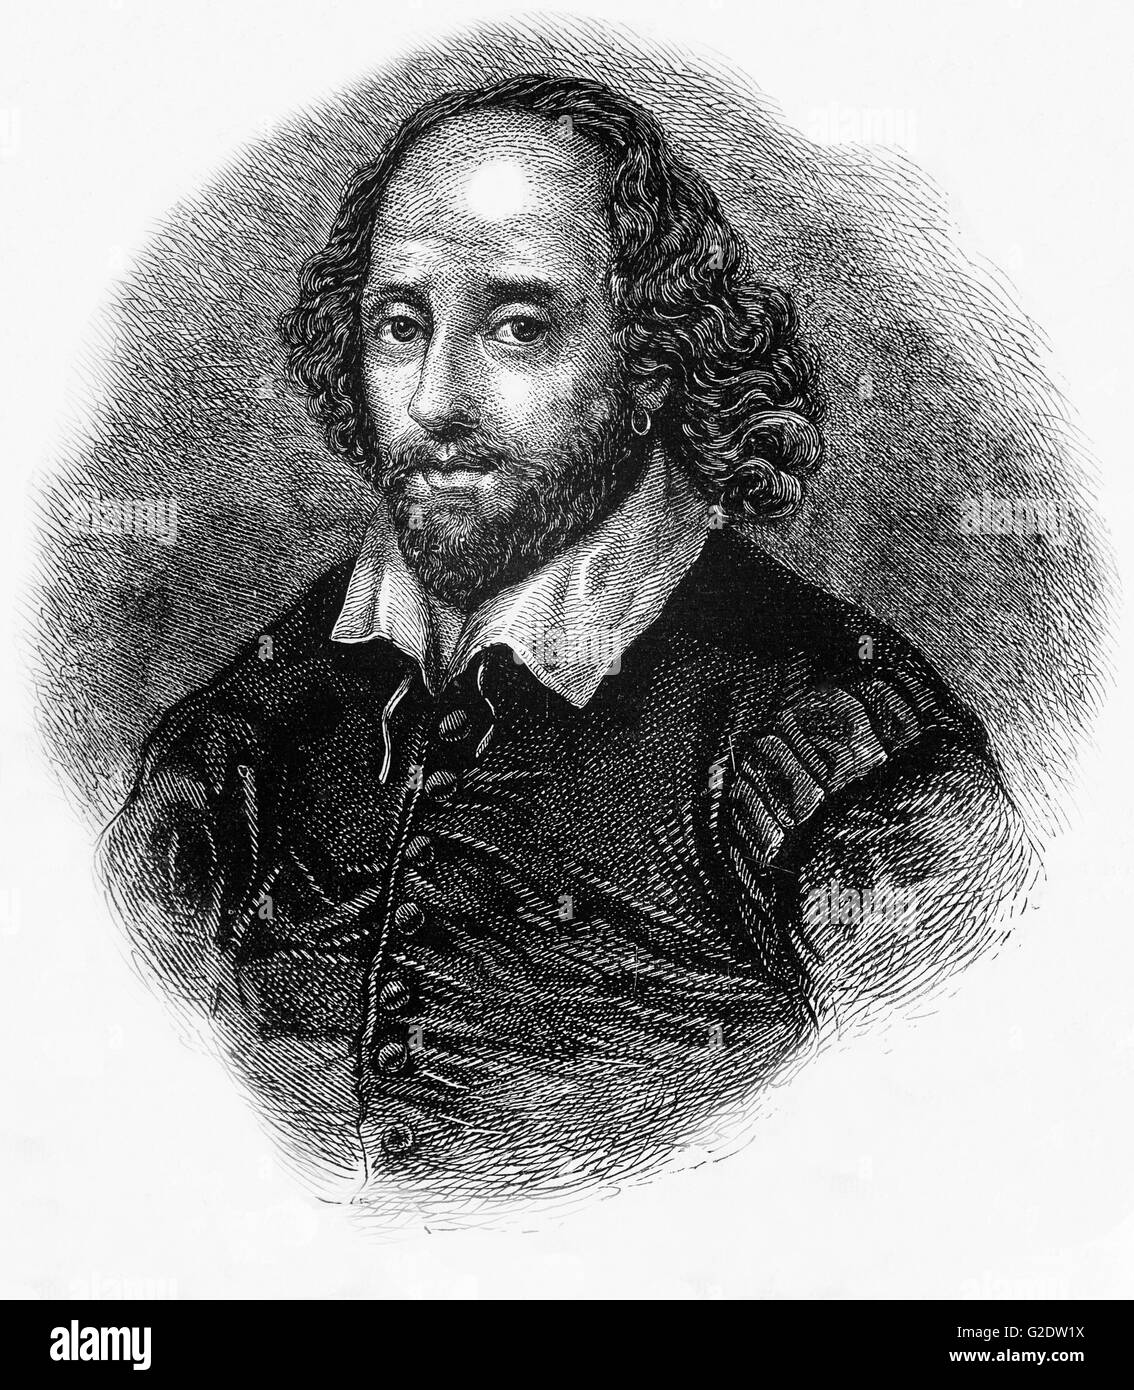 William Shakespeare (1564  – 1616), English poet, playwright, and actor, widely regarded as the greatest writer - Stock Image